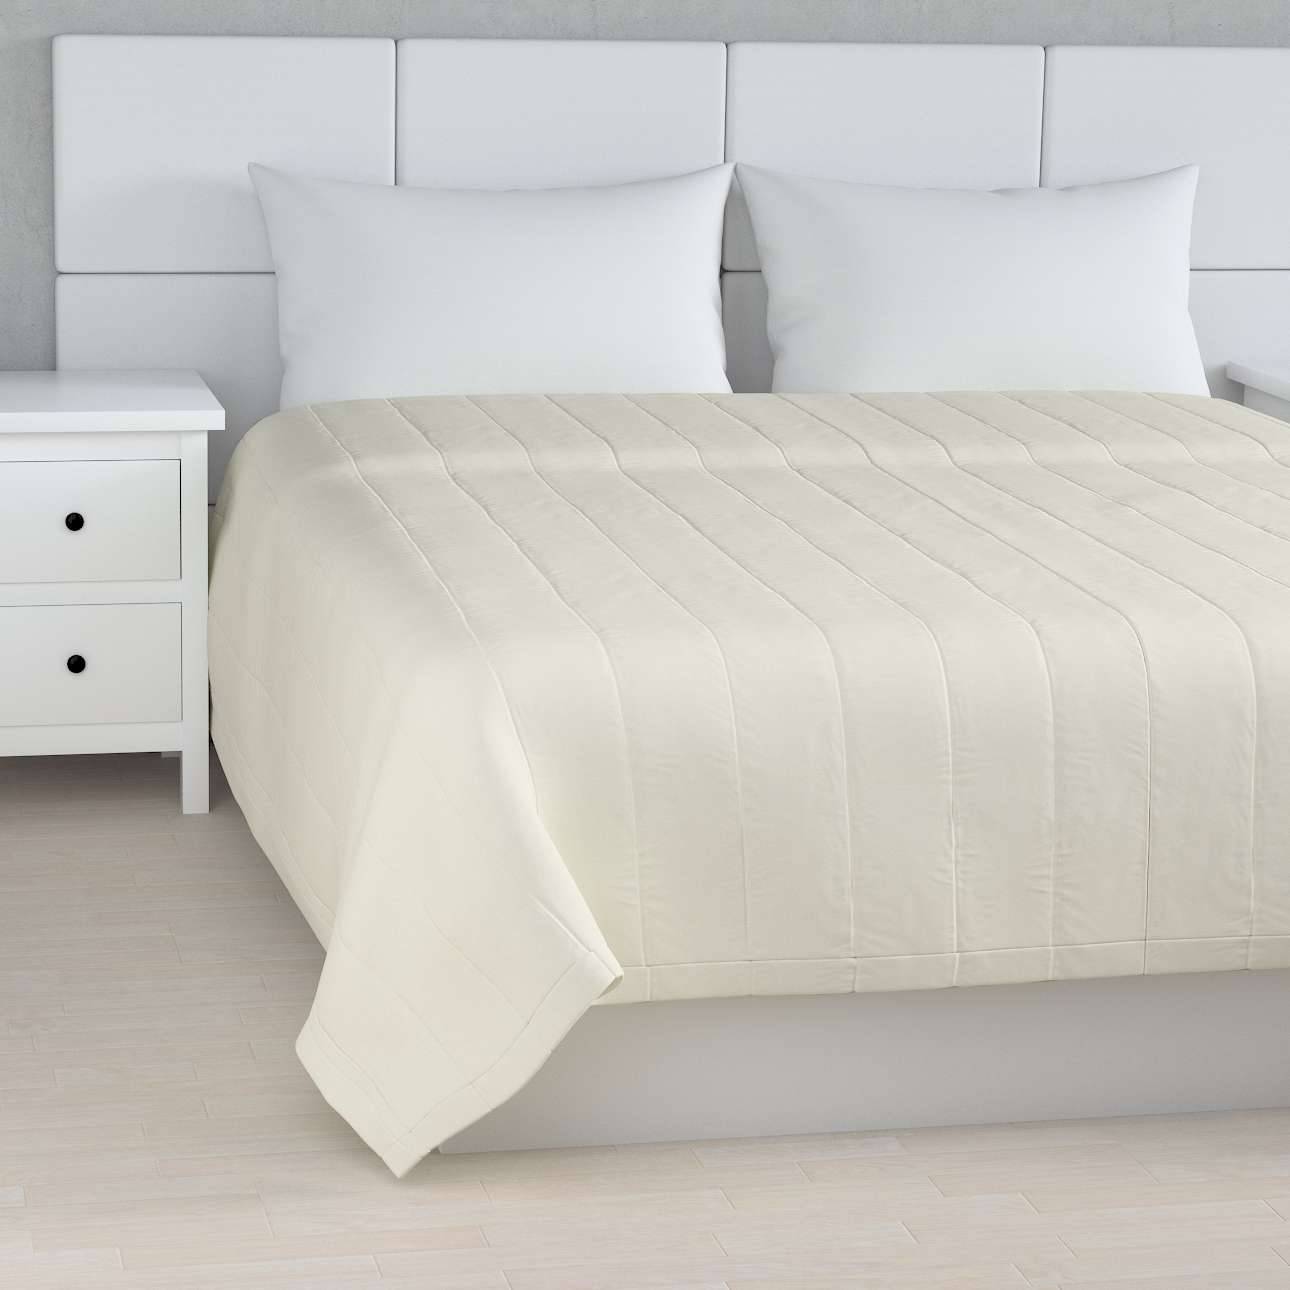 Quilted throw (vertical quilt pattern) 260 x 210 cm (102 x 83 inch) in collection Jupiter, fabric: 127-00